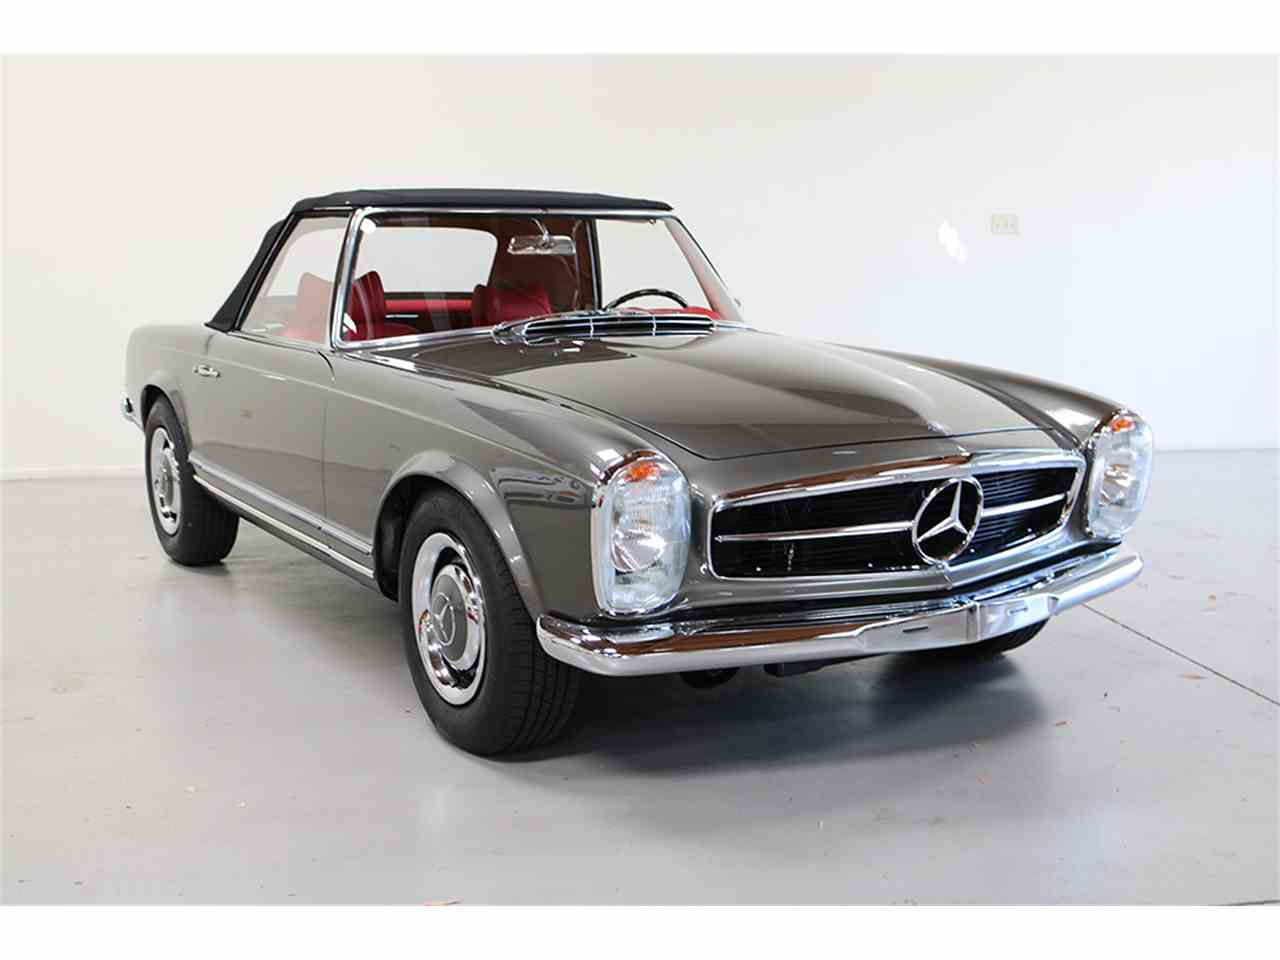 Classic Mercedes-Benz 250SL for Sale on ClassicCars.com